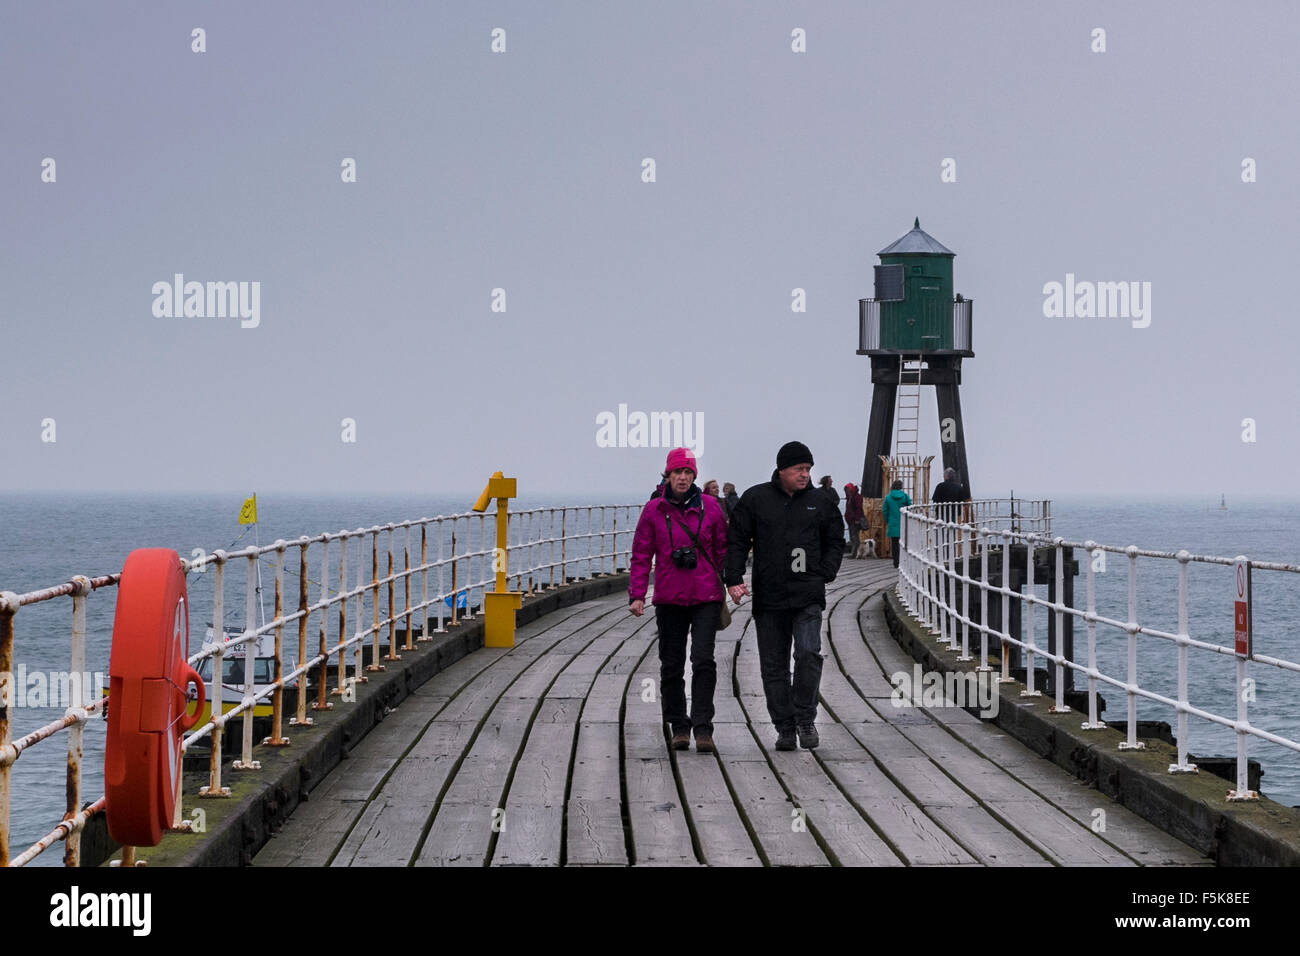 People in warm clothes, walking on Whitby's West Pier Extension, England, UK  - grey wooden boards, sea and - Stock Image